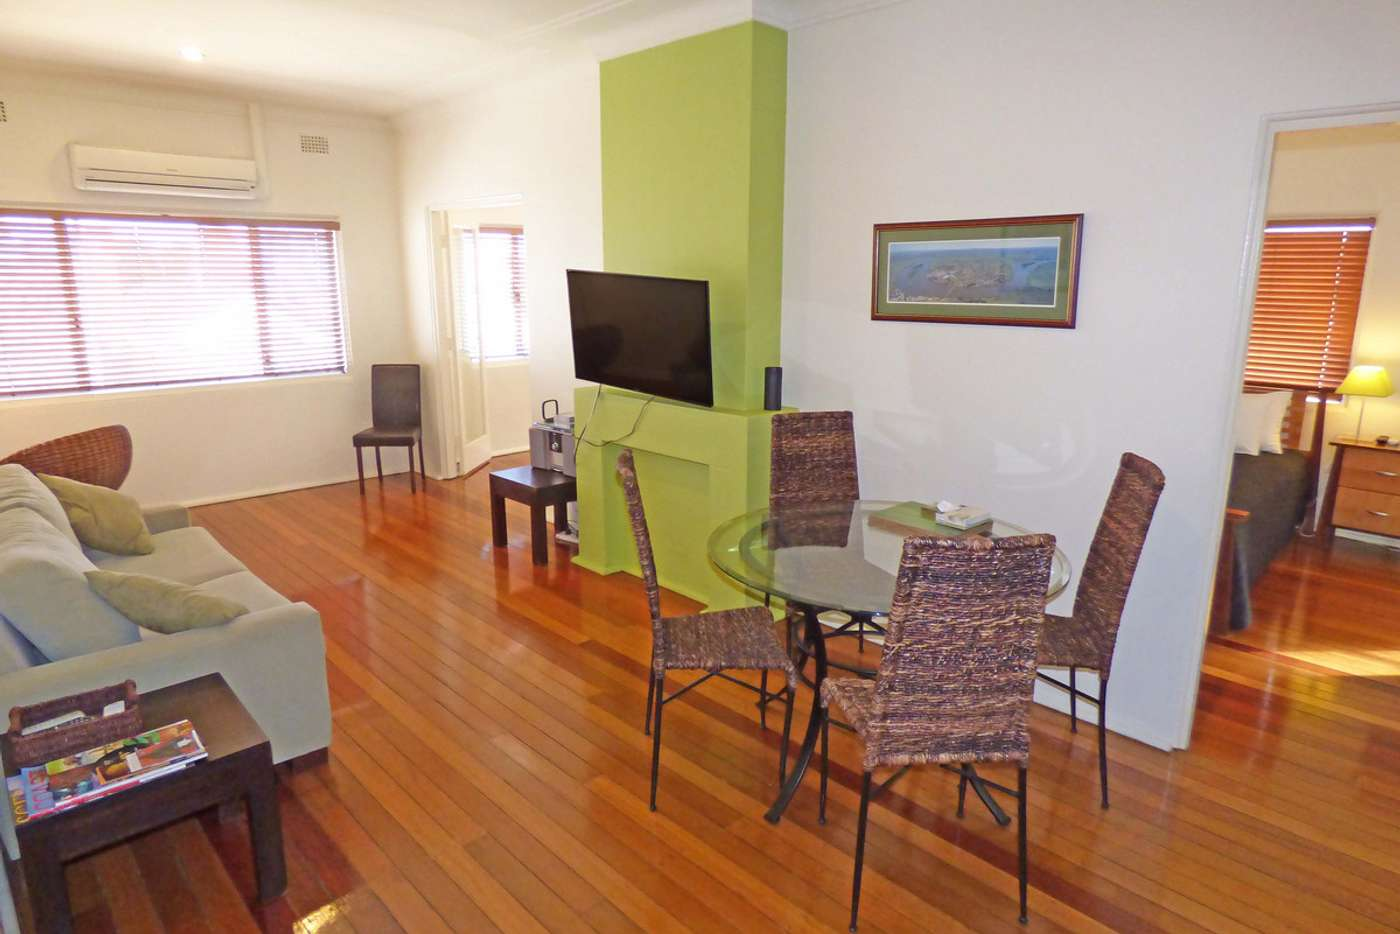 Main view of Homely apartment listing, 2/94 Fitzroy Street, Grafton NSW 2460